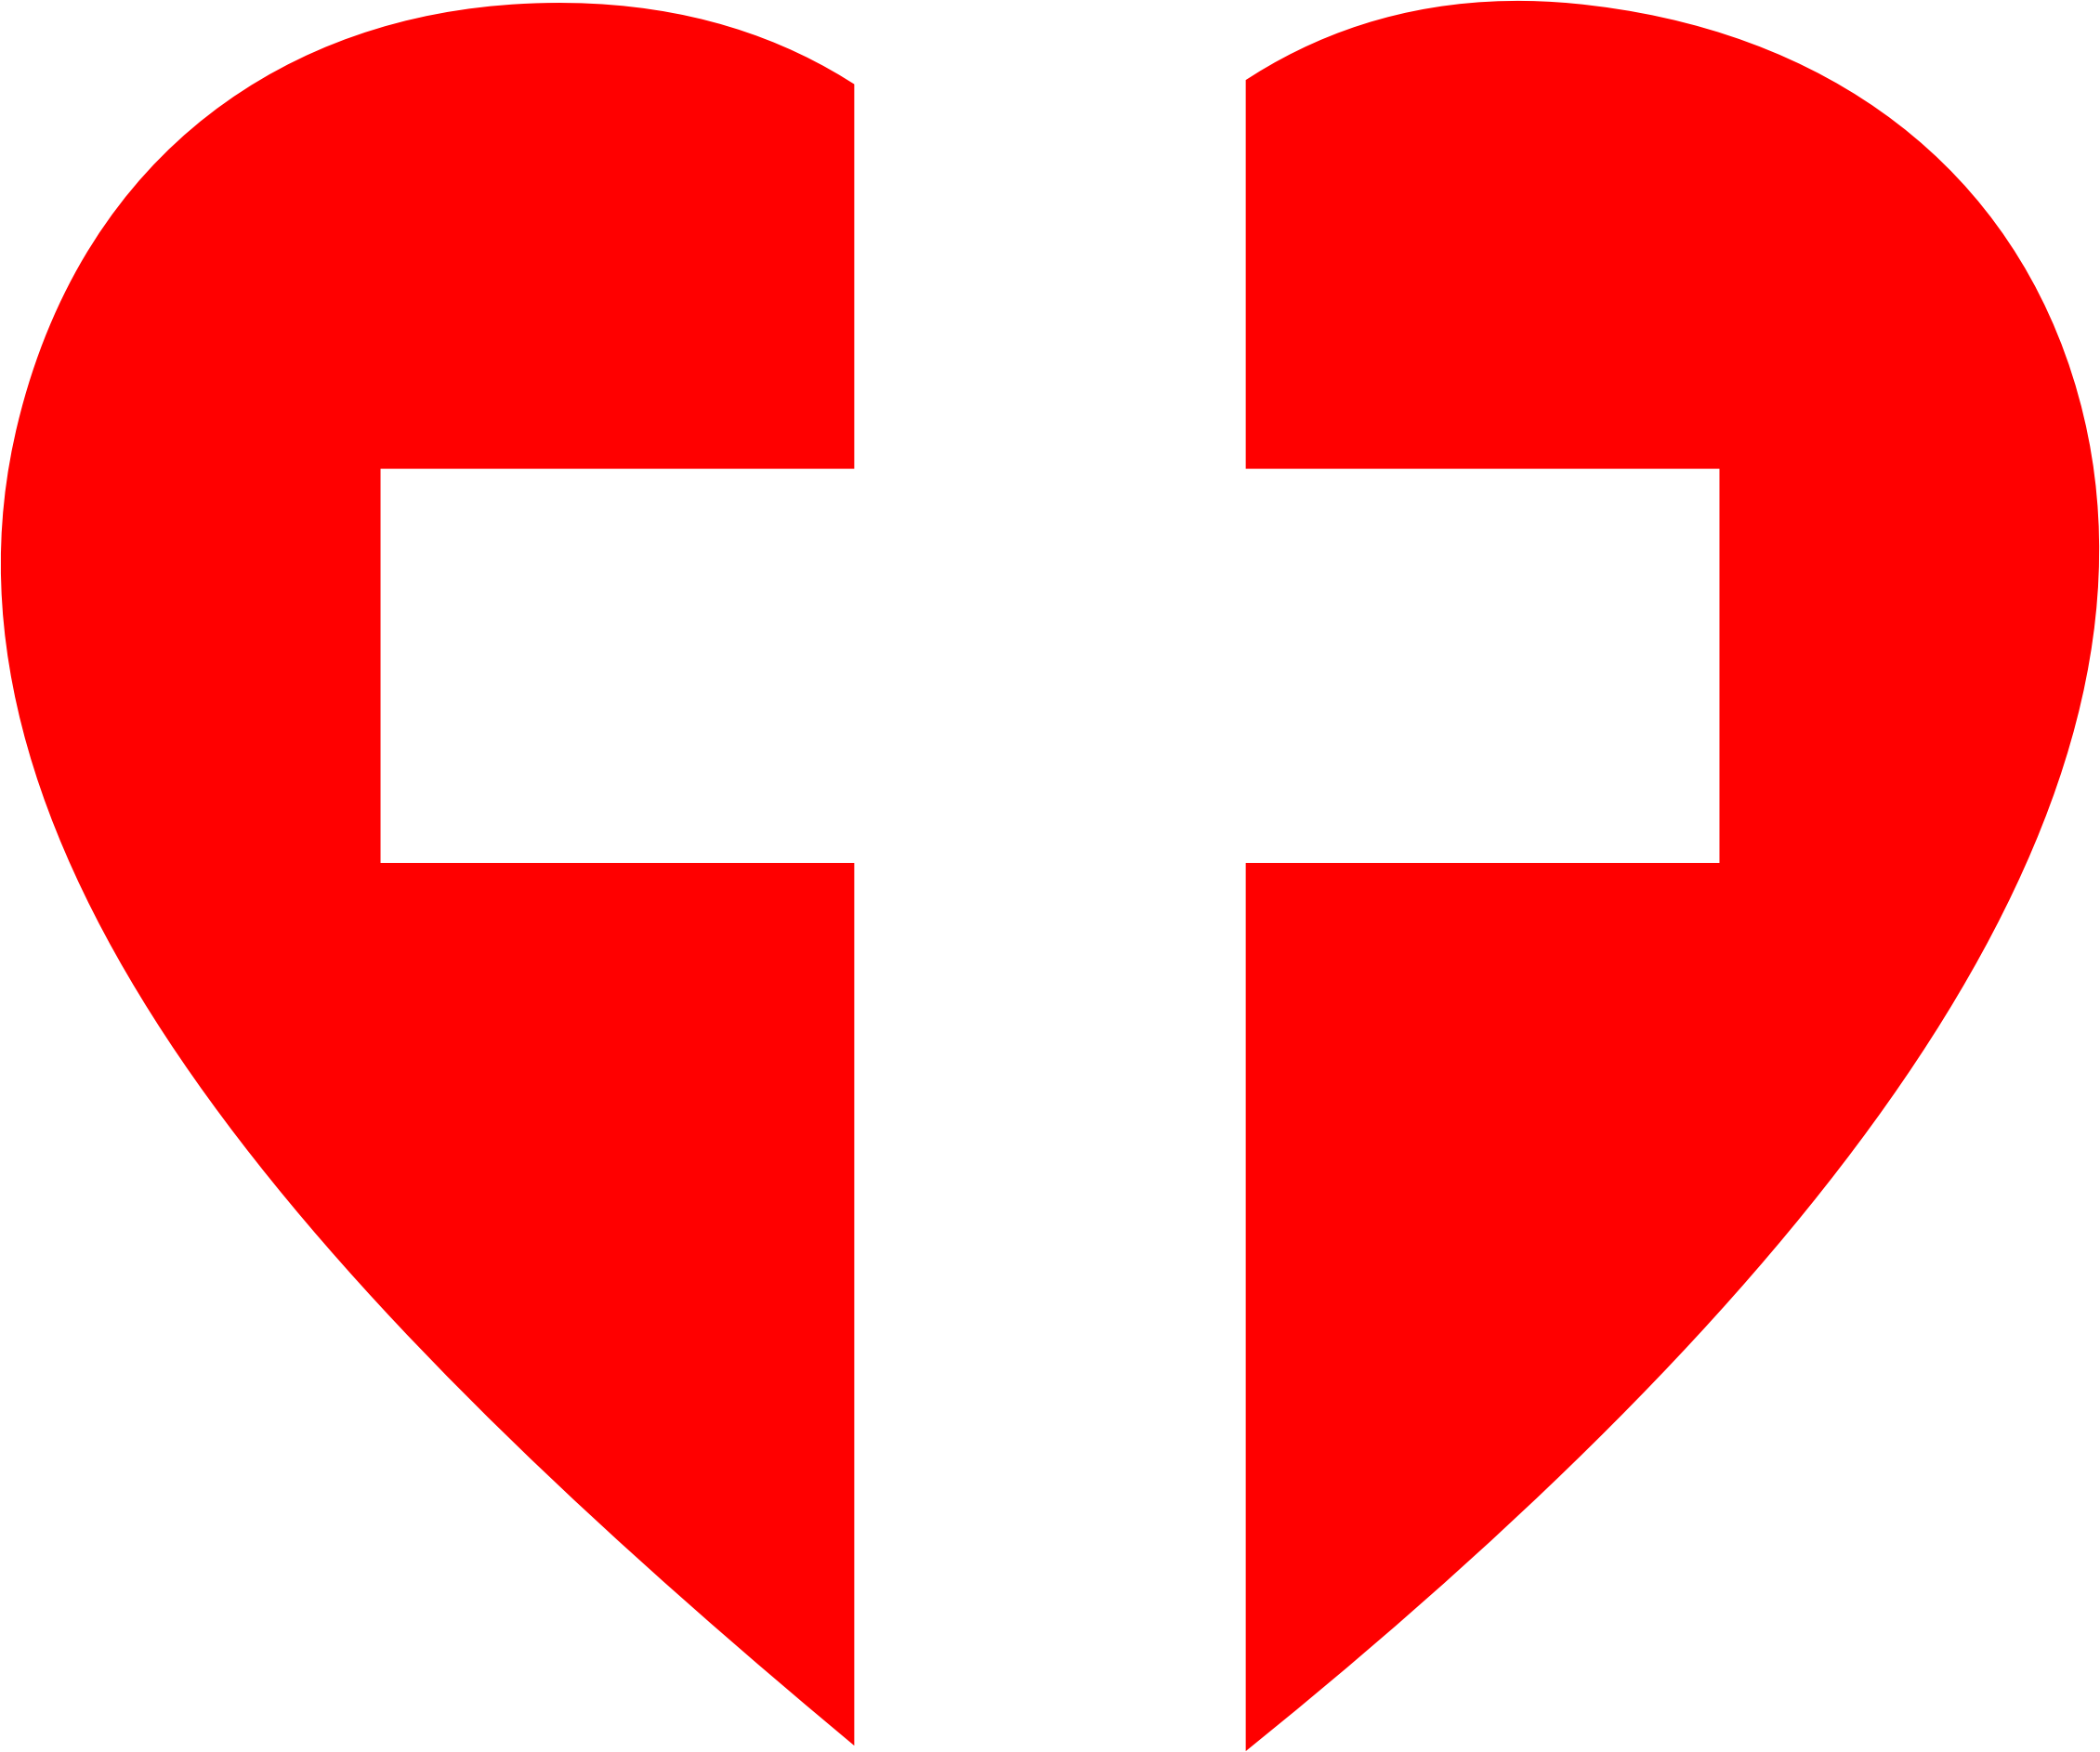 Cross And Heart Clipart at GetDrawings.com | Free for personal use ... image royalty free